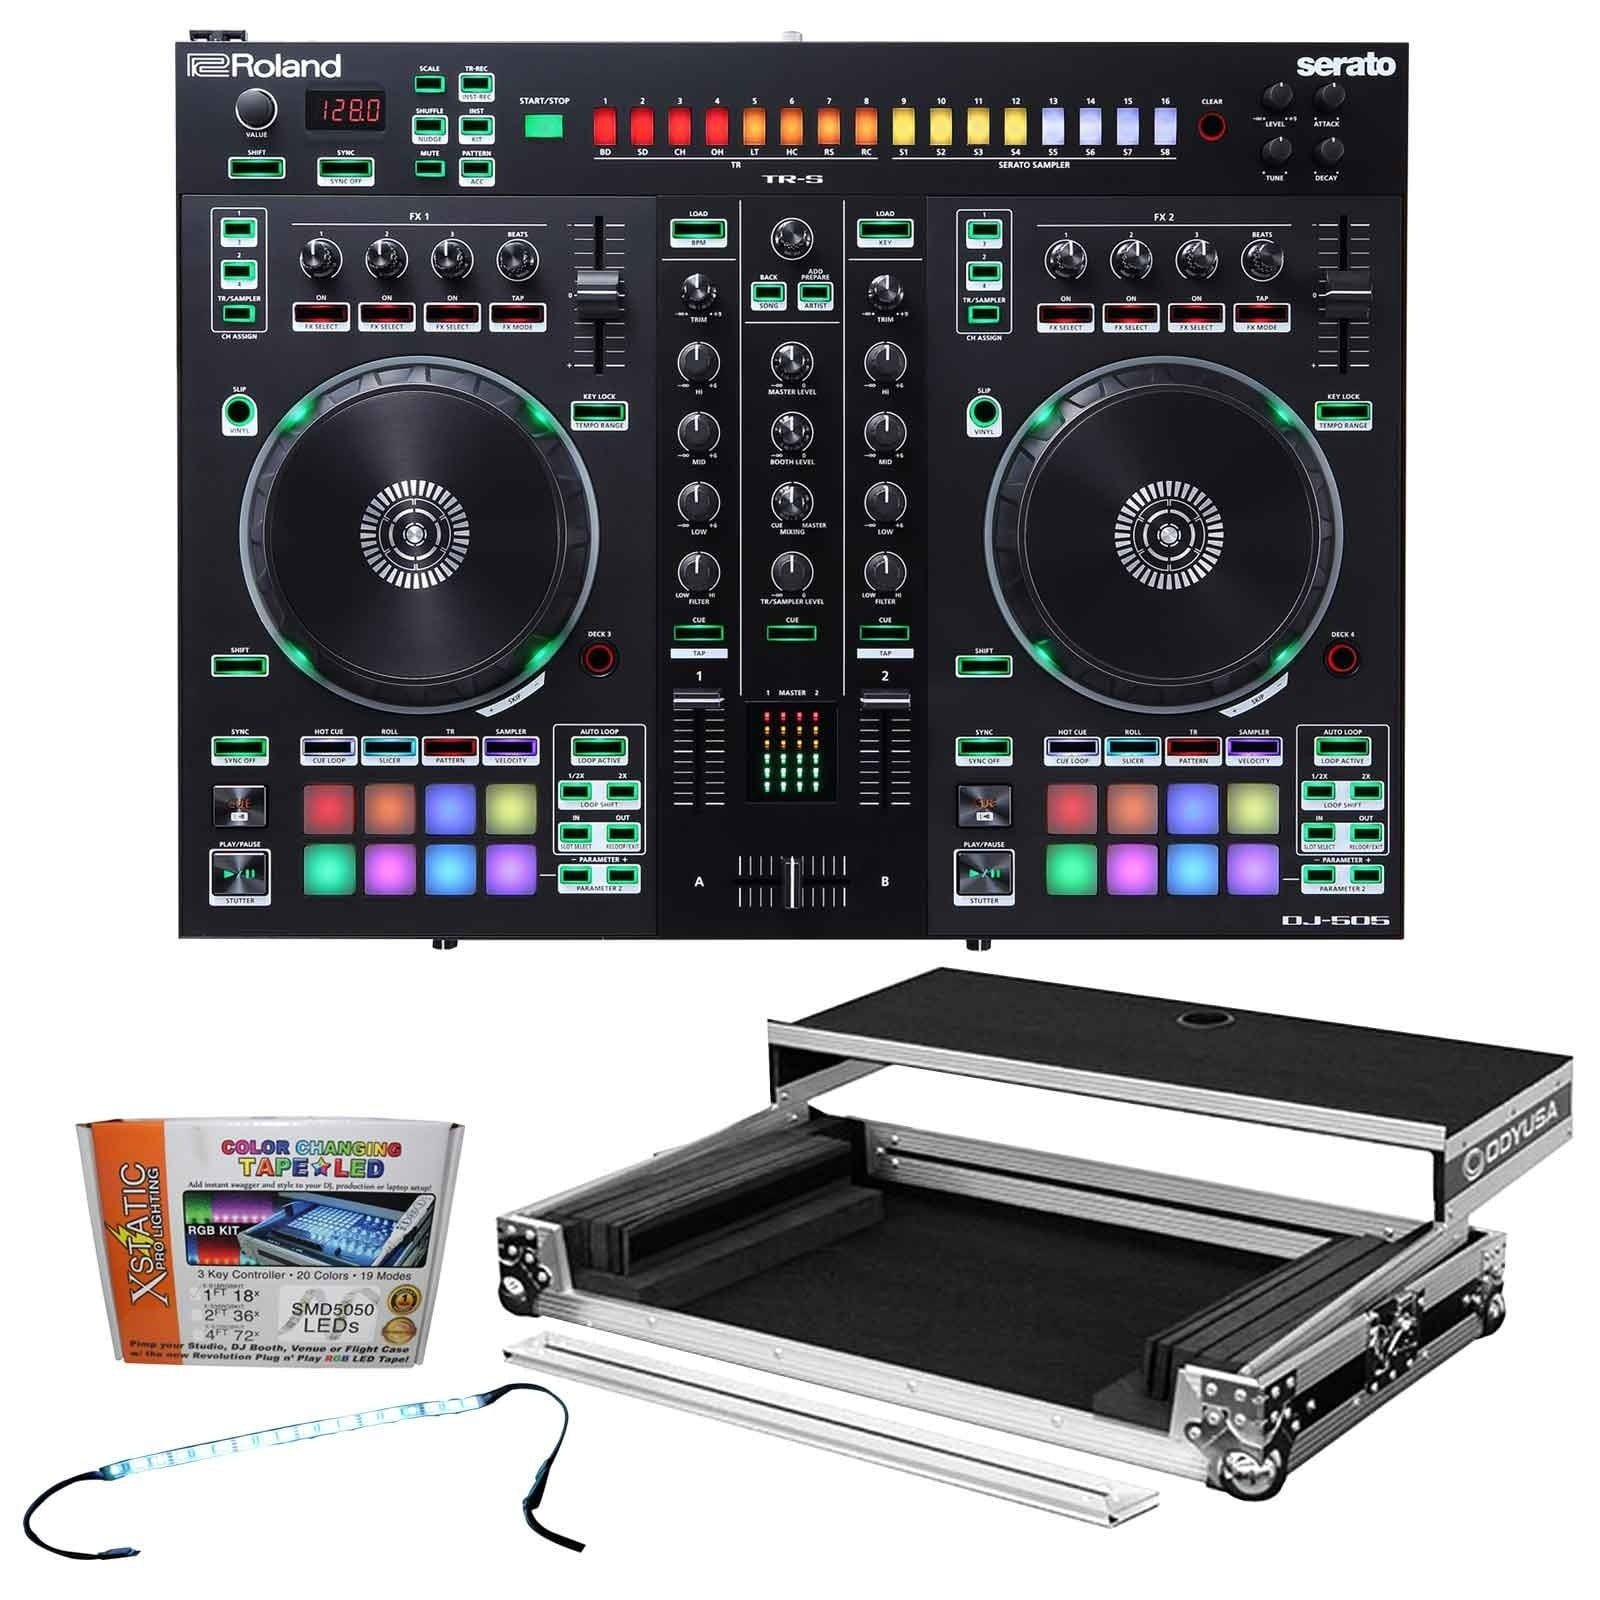 roland-dj-505-serato-dj-controller-with-strip-light-kit-flight-case-package-473.jpg